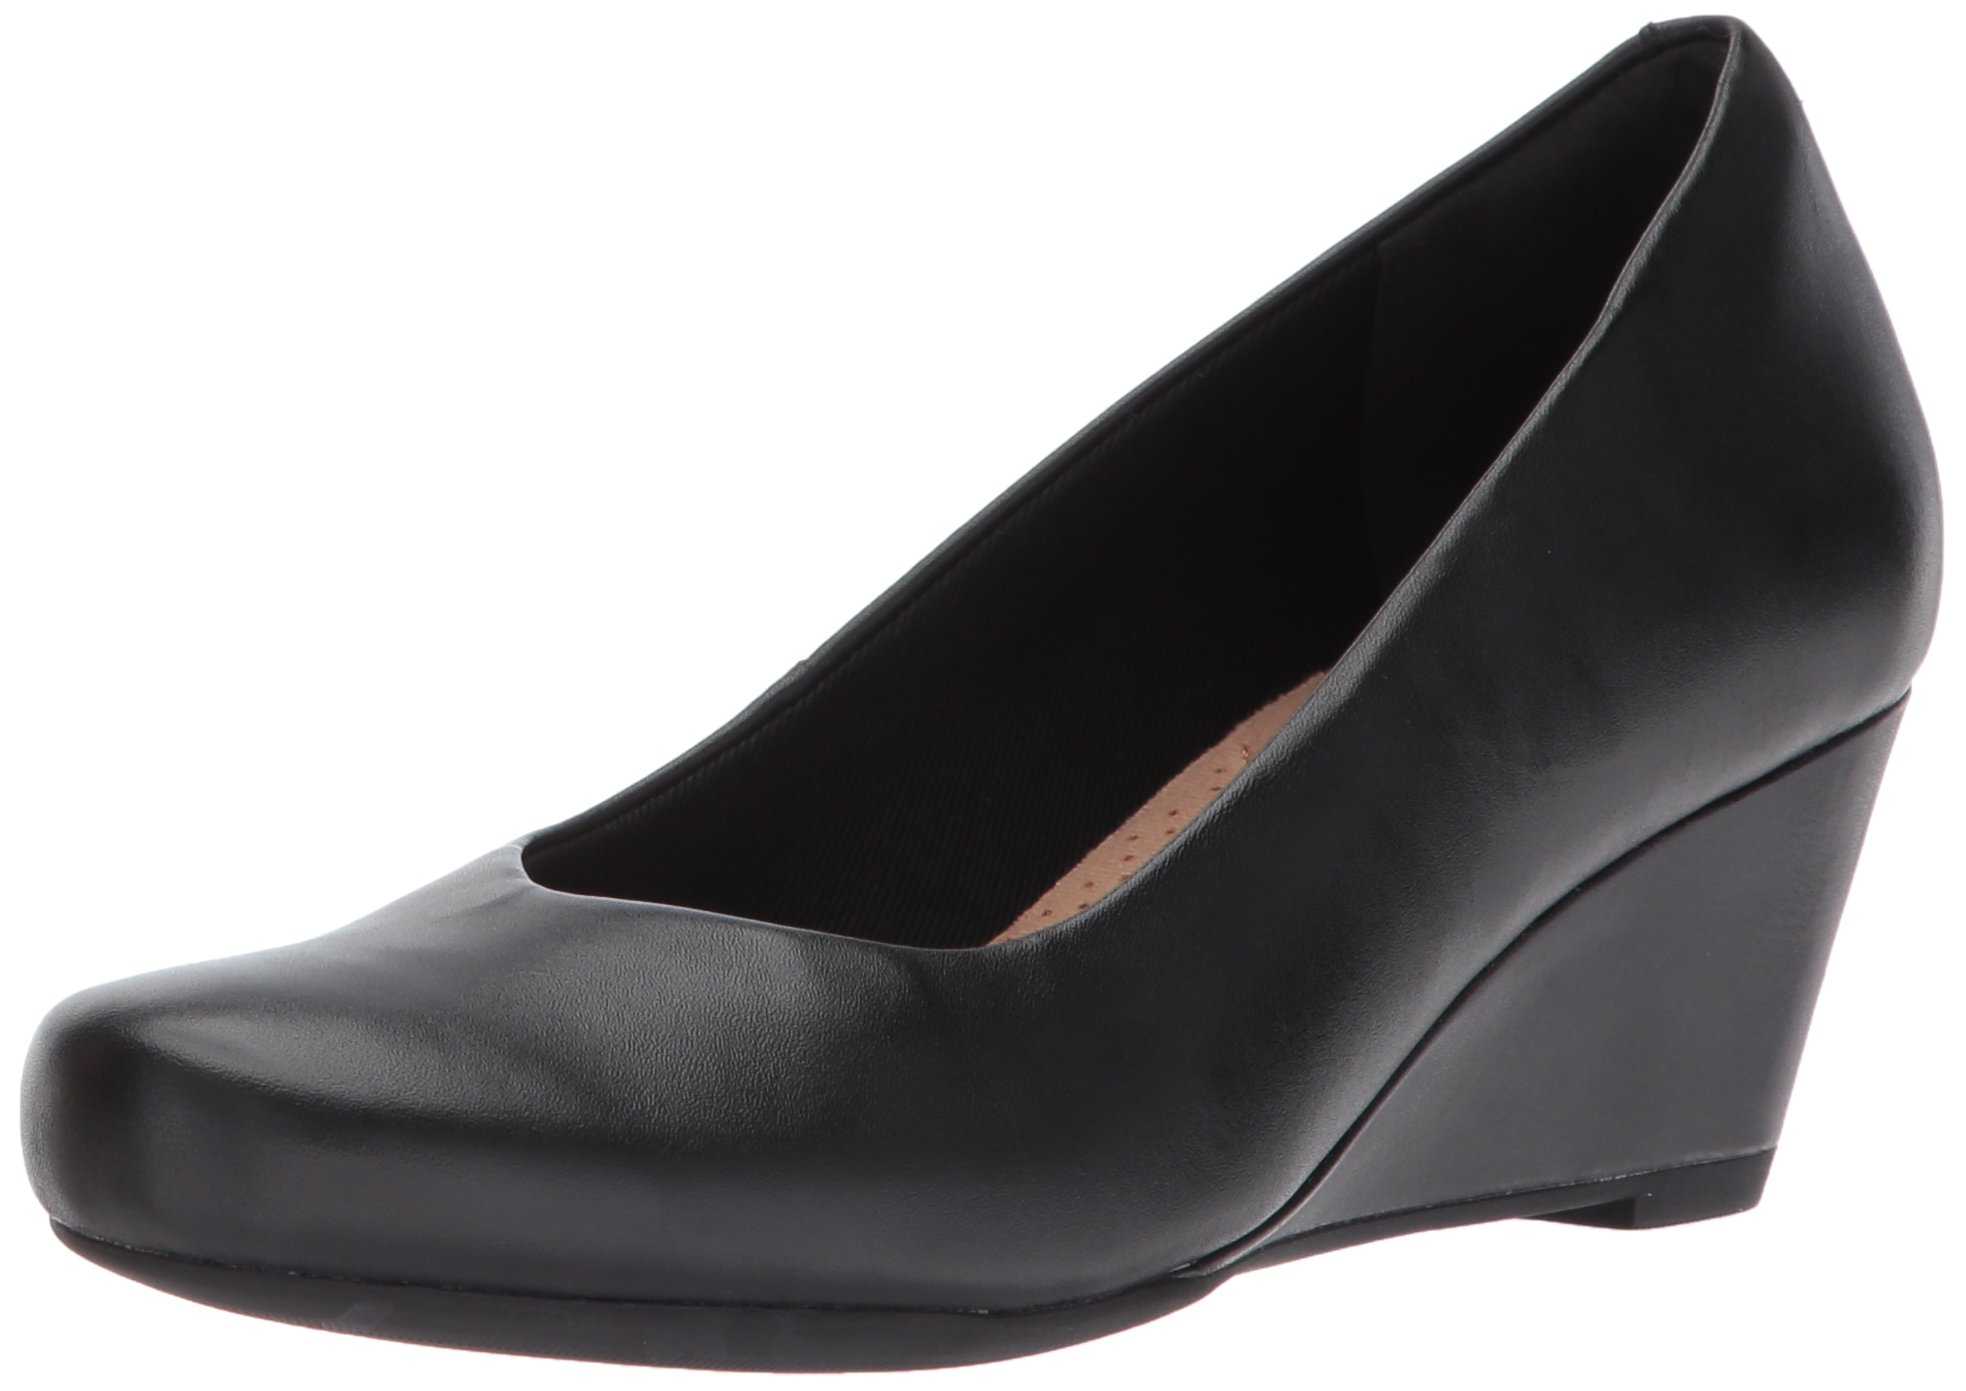 CLARKS Women's Flores Tulip Wedge Pump,Black Leather,8 M US by CLARKS (Image #1)